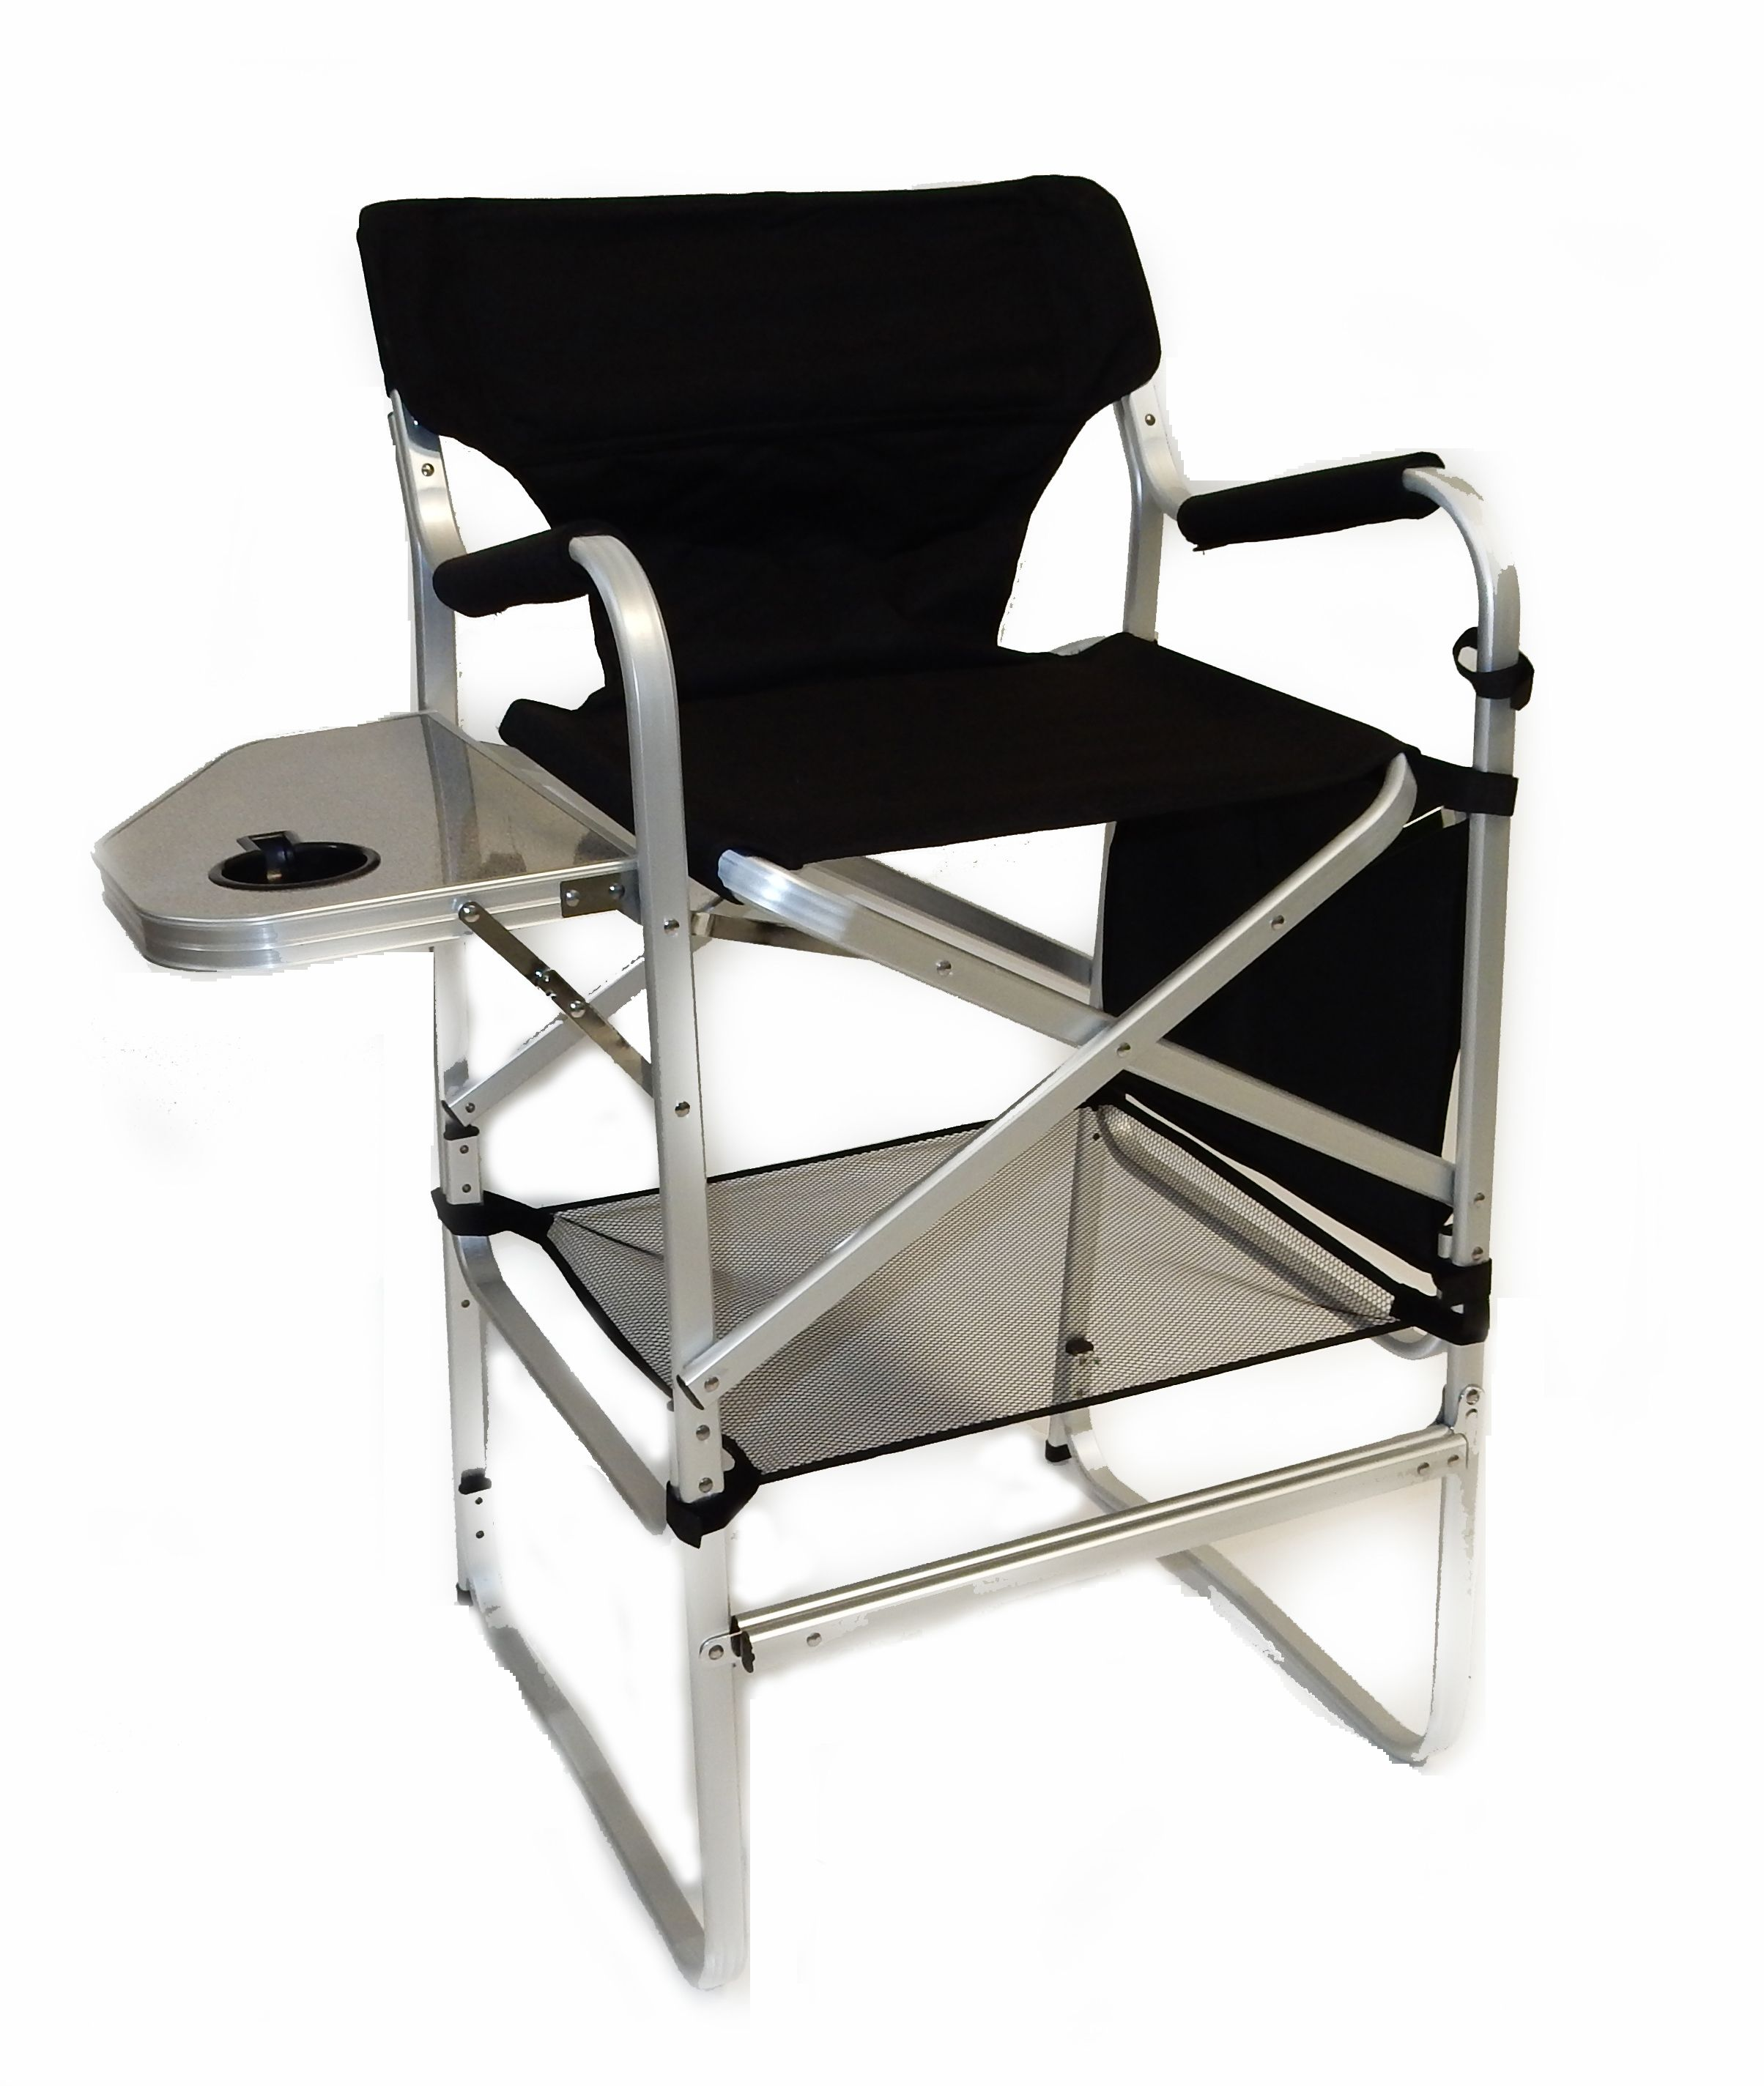 tall folding chairs directors bar concrete chair with side table http cielobautista